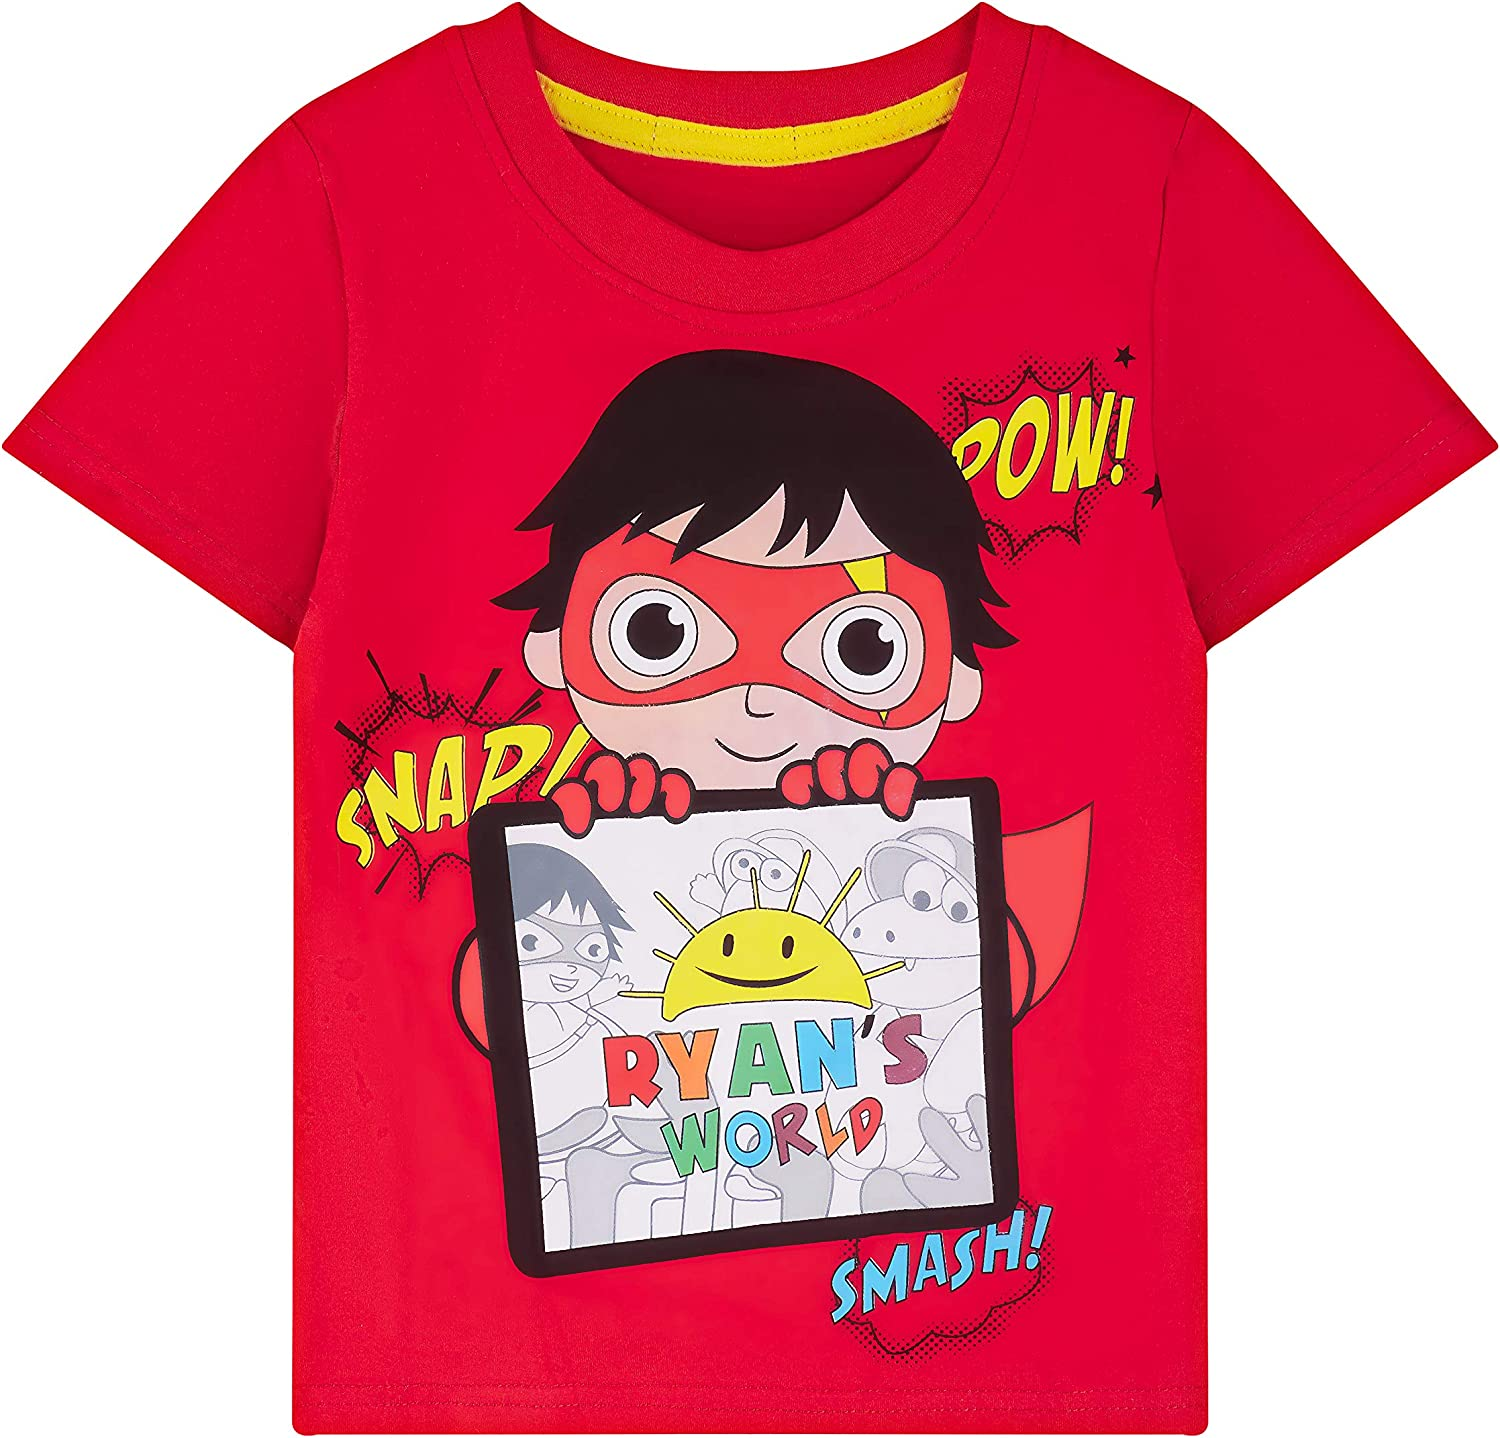 Little Boys T-Shirts Short Sleeve 1 Pack Graphic Tee Red Cartoon 3-8 Y